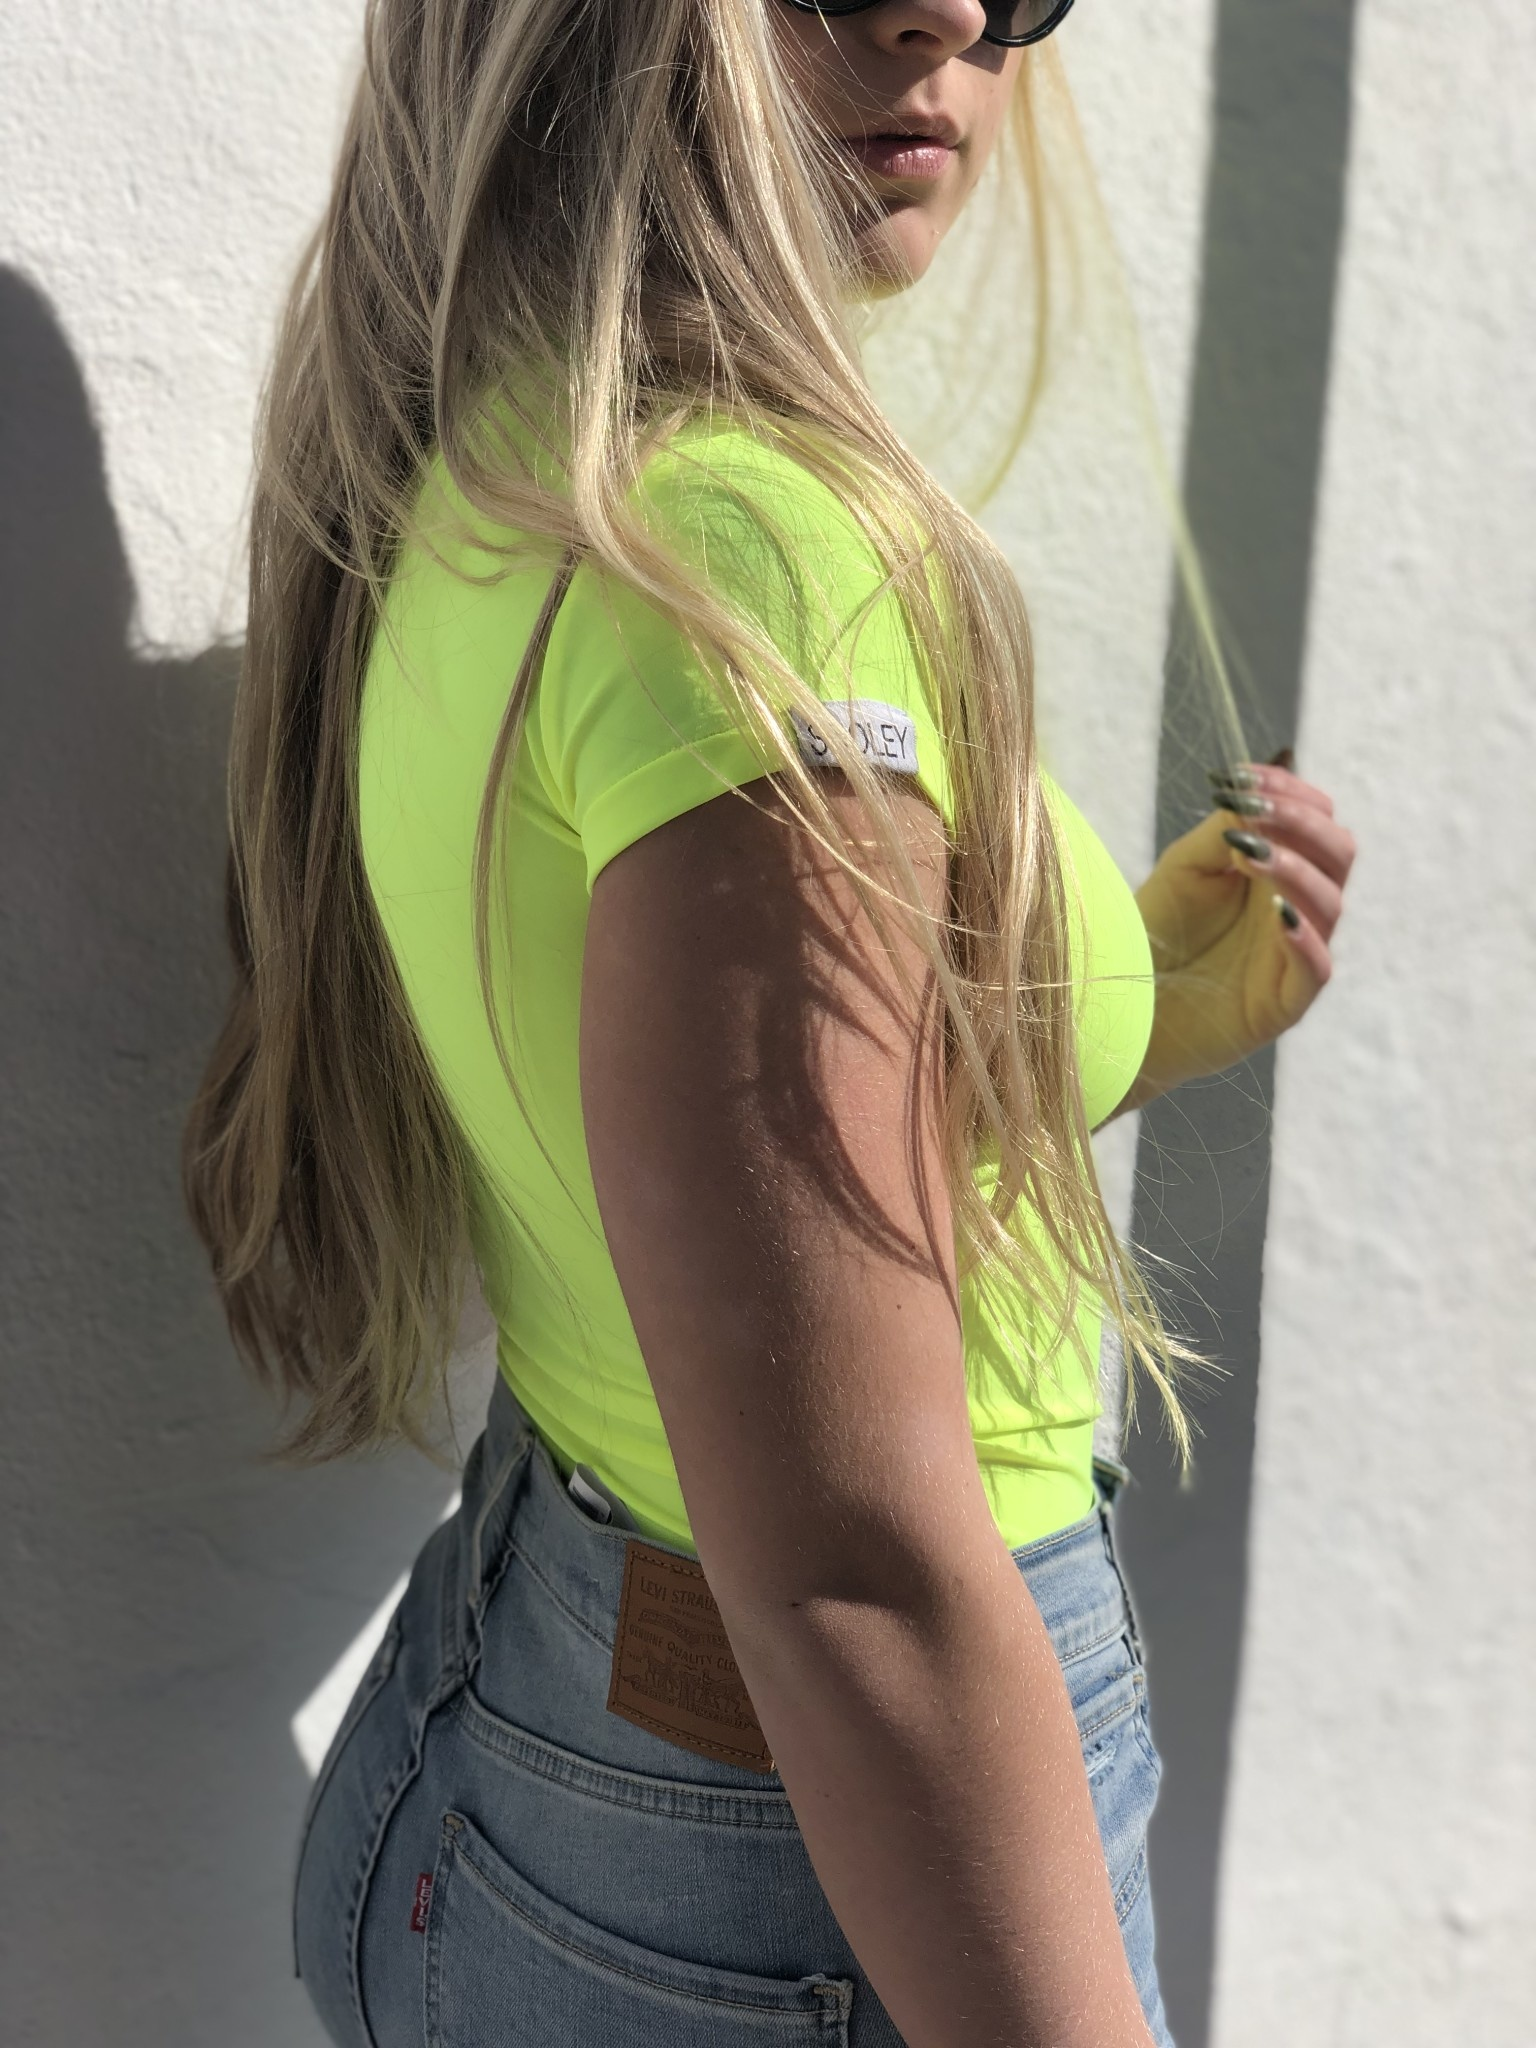 Sooley Designs Neon Top